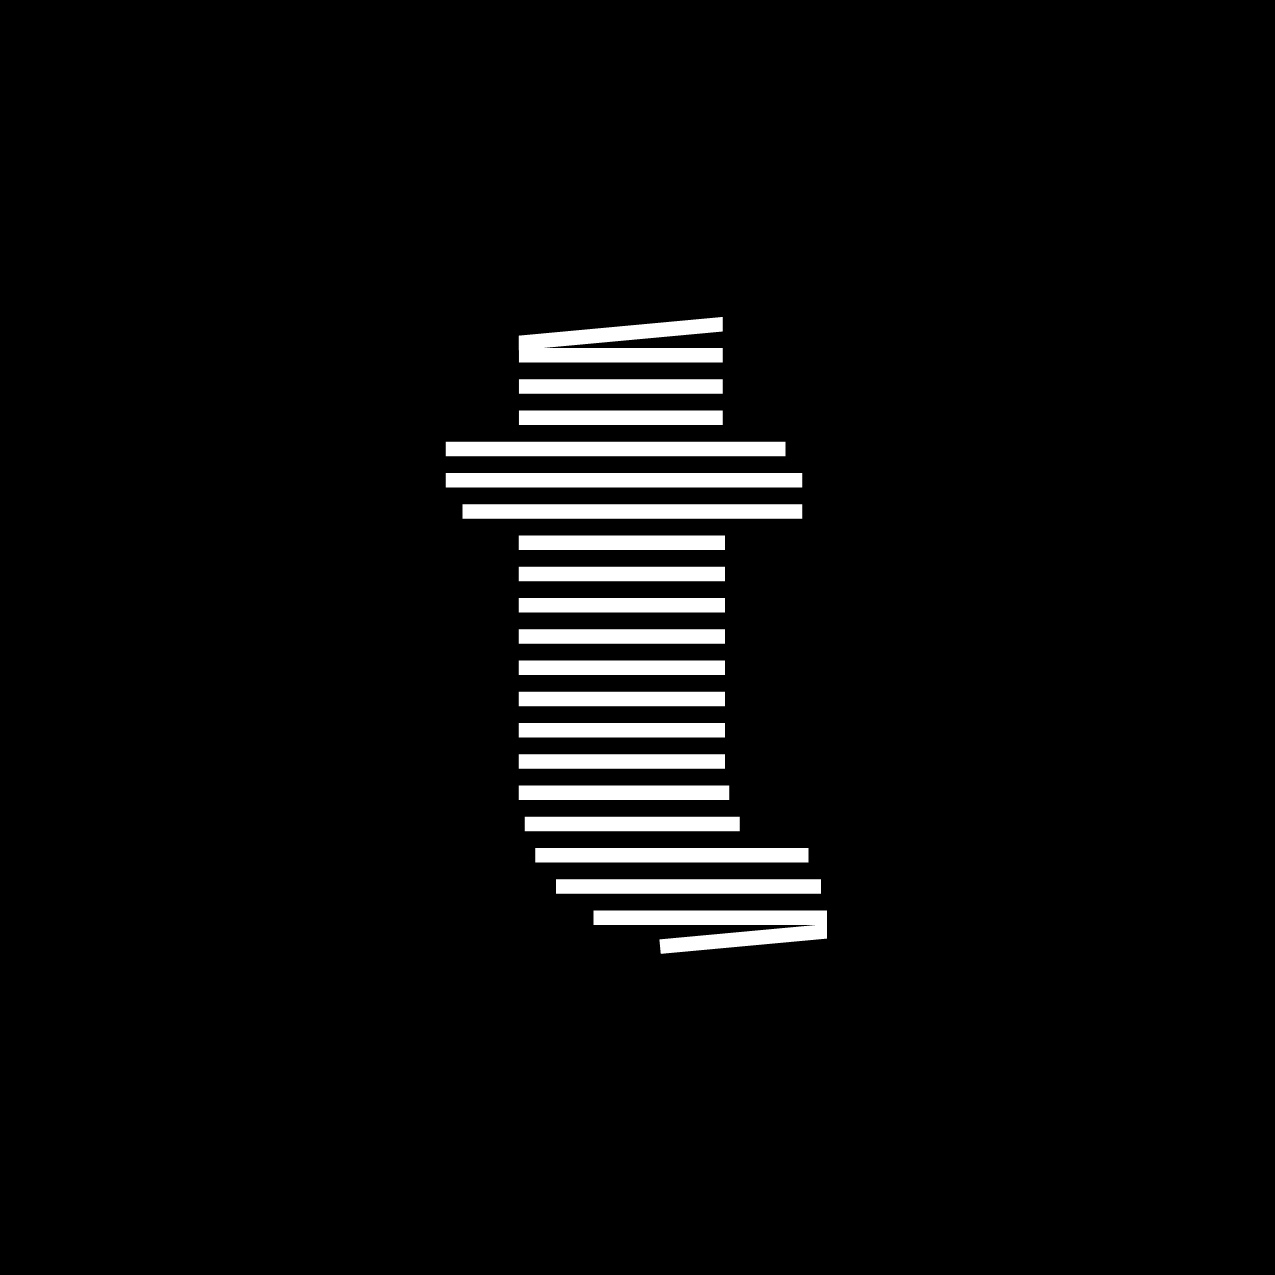 Letter T13 Design by Furia